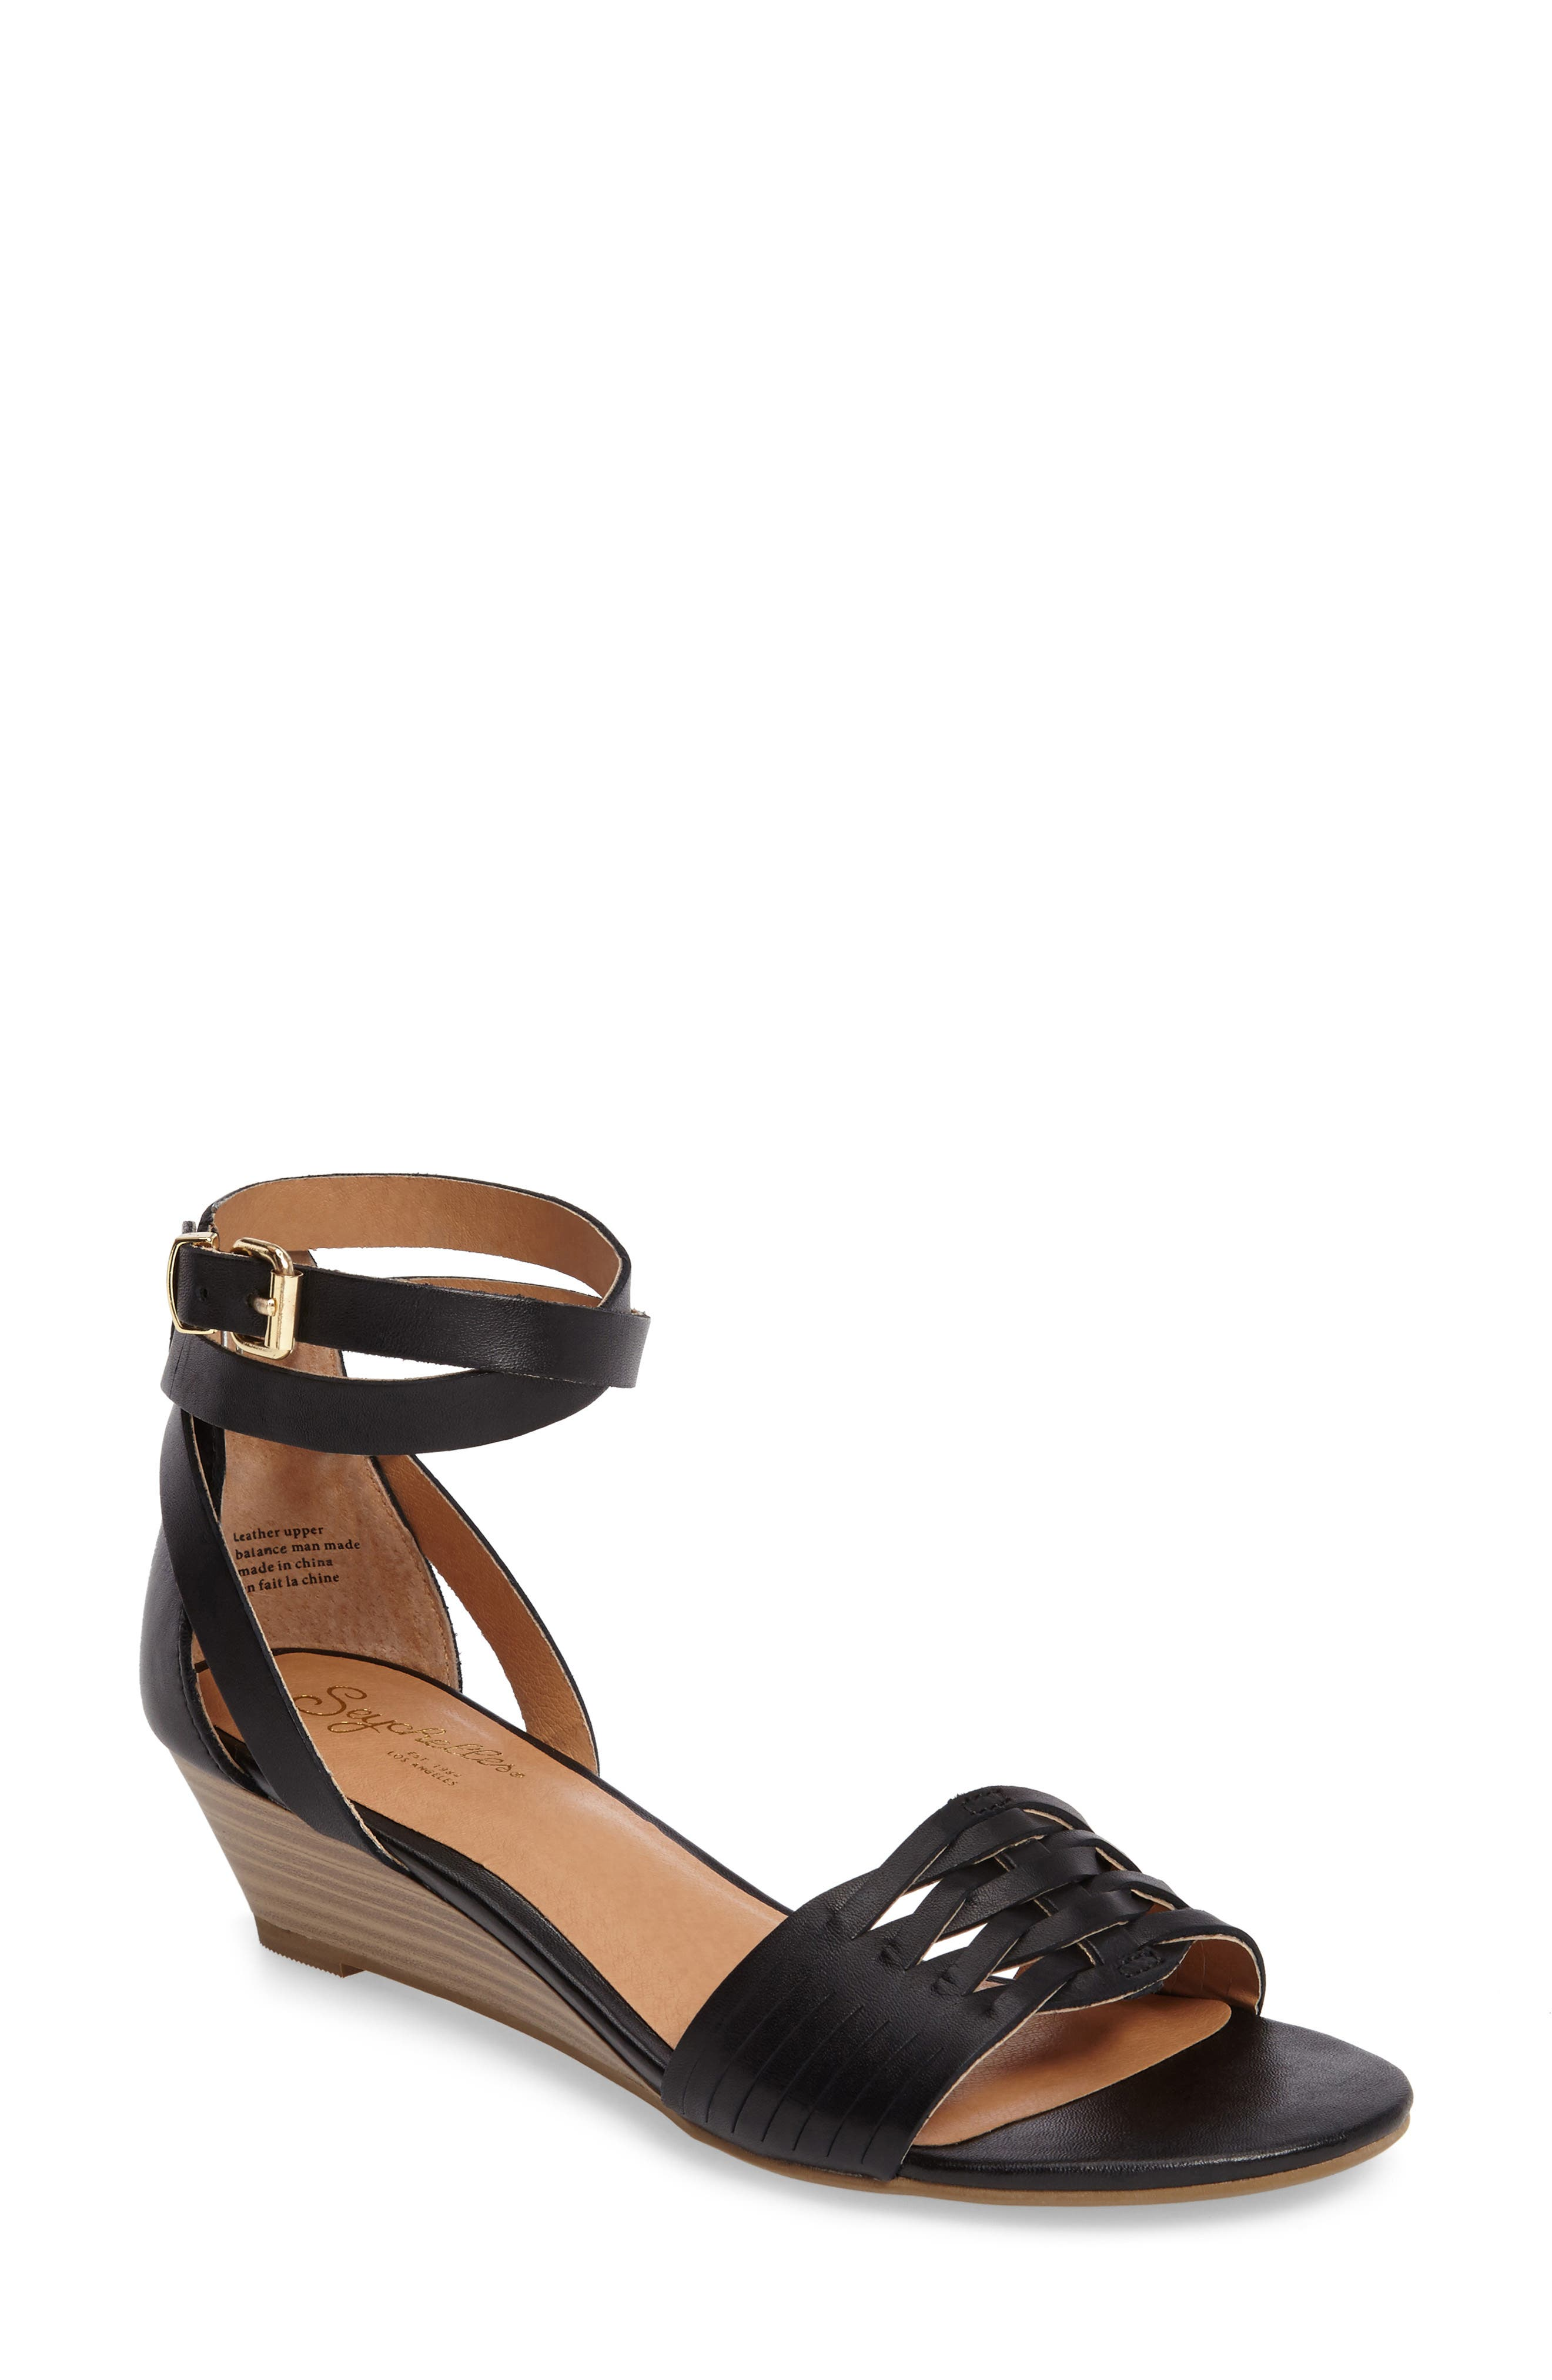 Sincere Wraparound Wedge Sandal,                         Main,                         color,